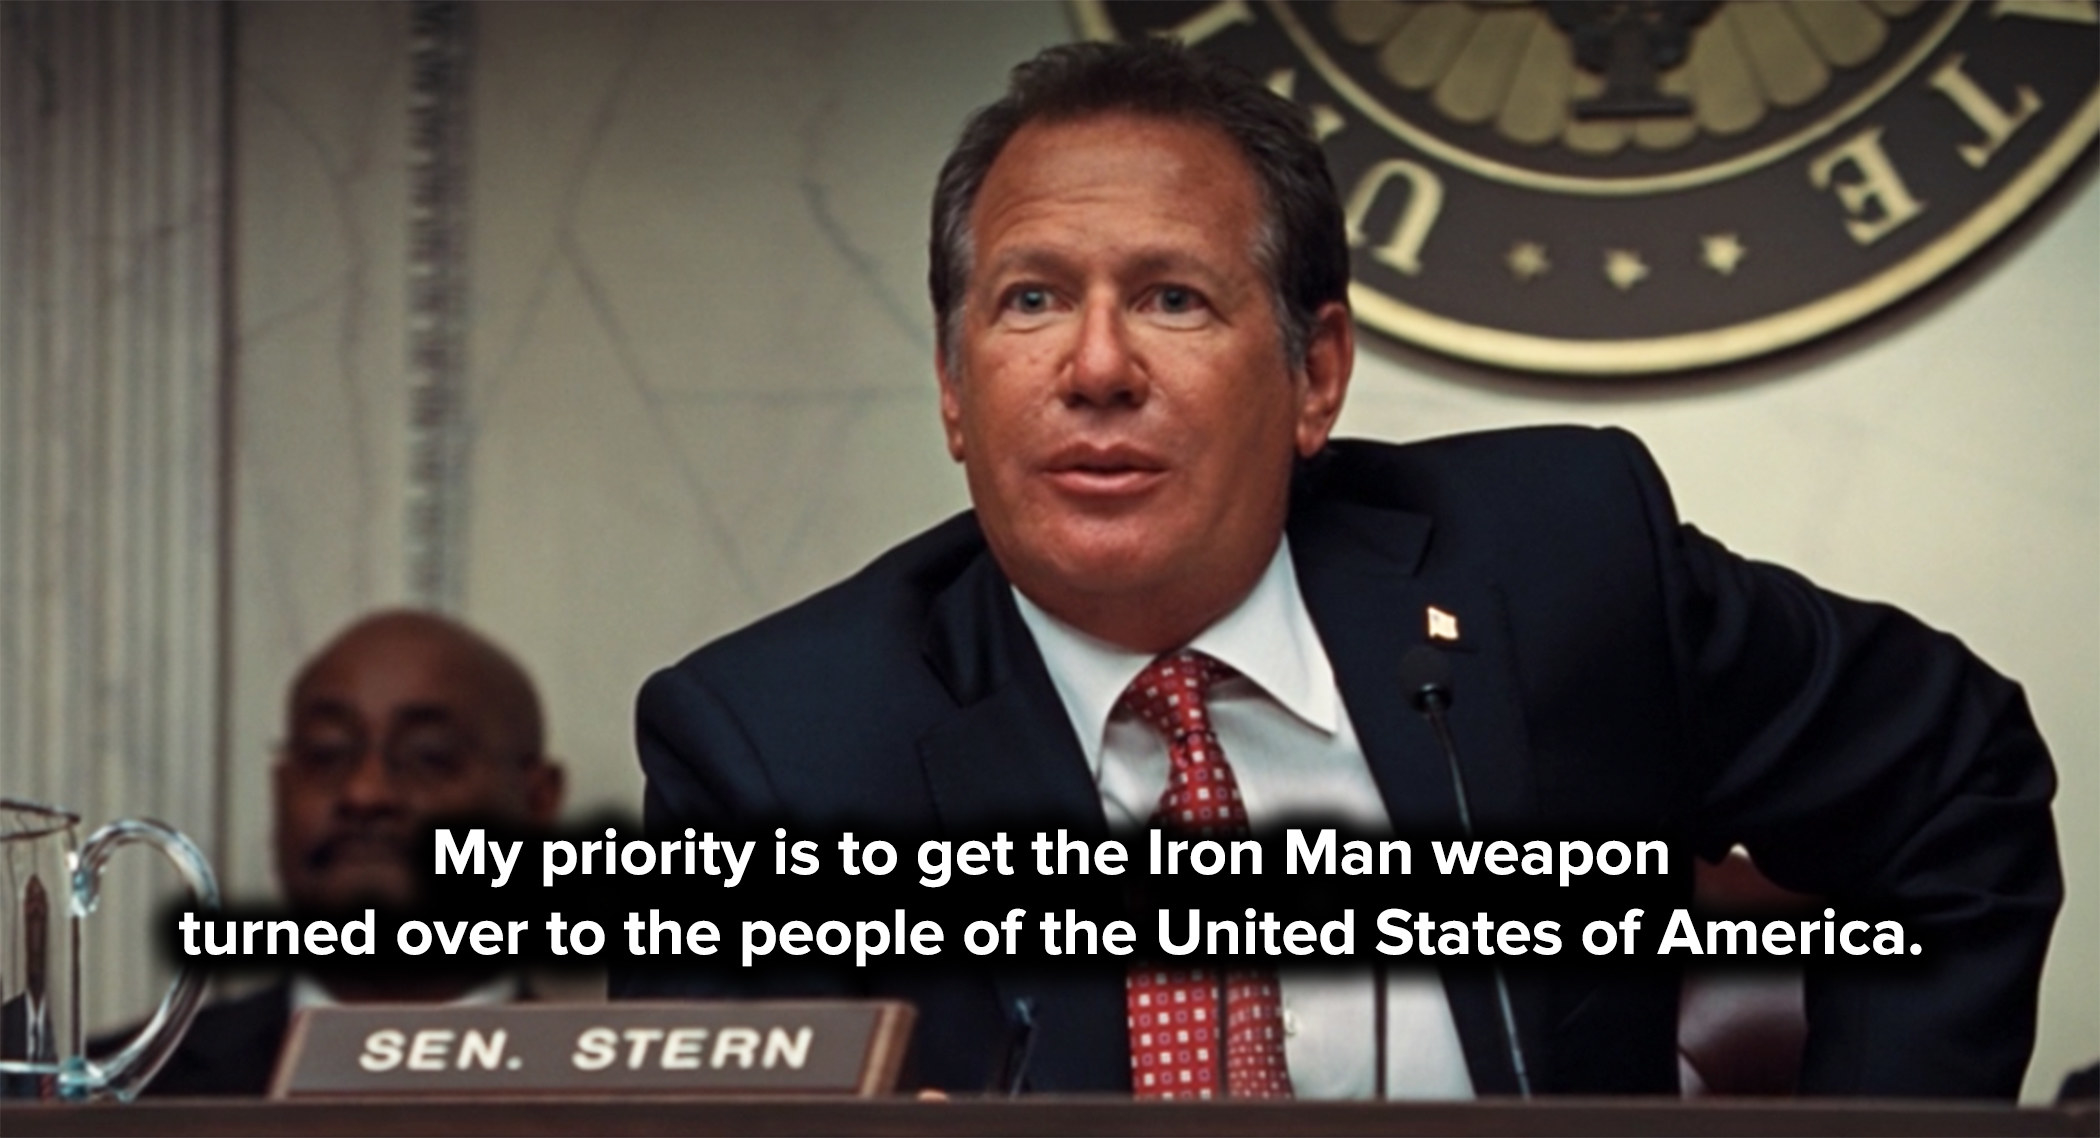 Senator Stern demands Tony turn over the Iron Man suit to the US government